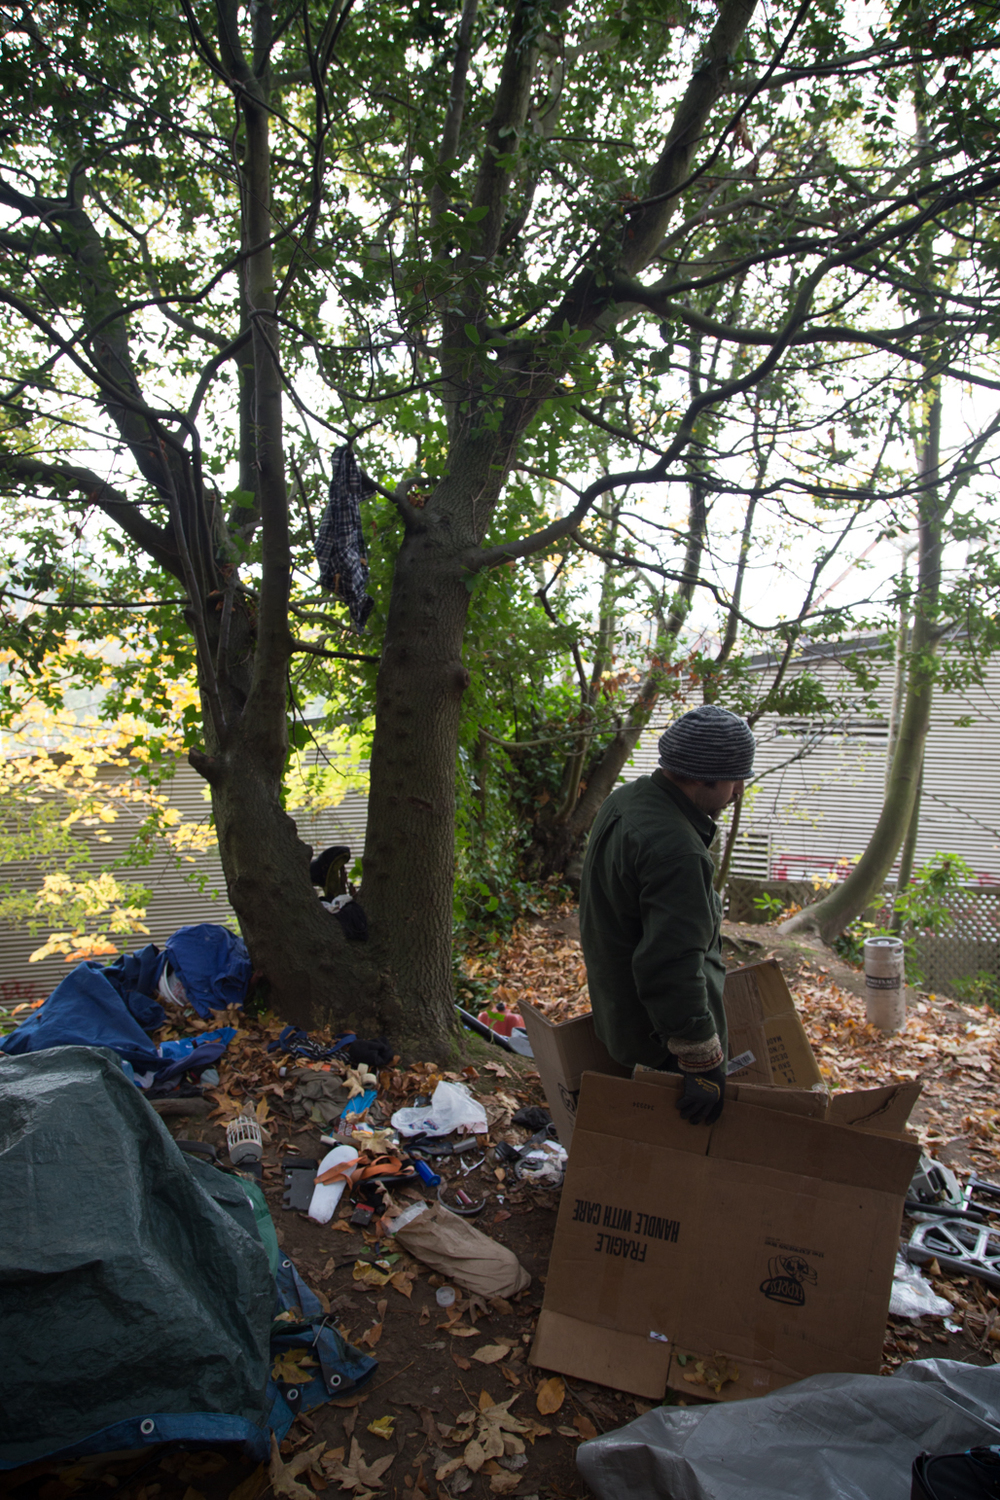 Justin, a resident of the Ballard Locks encampment, breaks down and moves his belongings as a city clean up crew evicts them from their location.